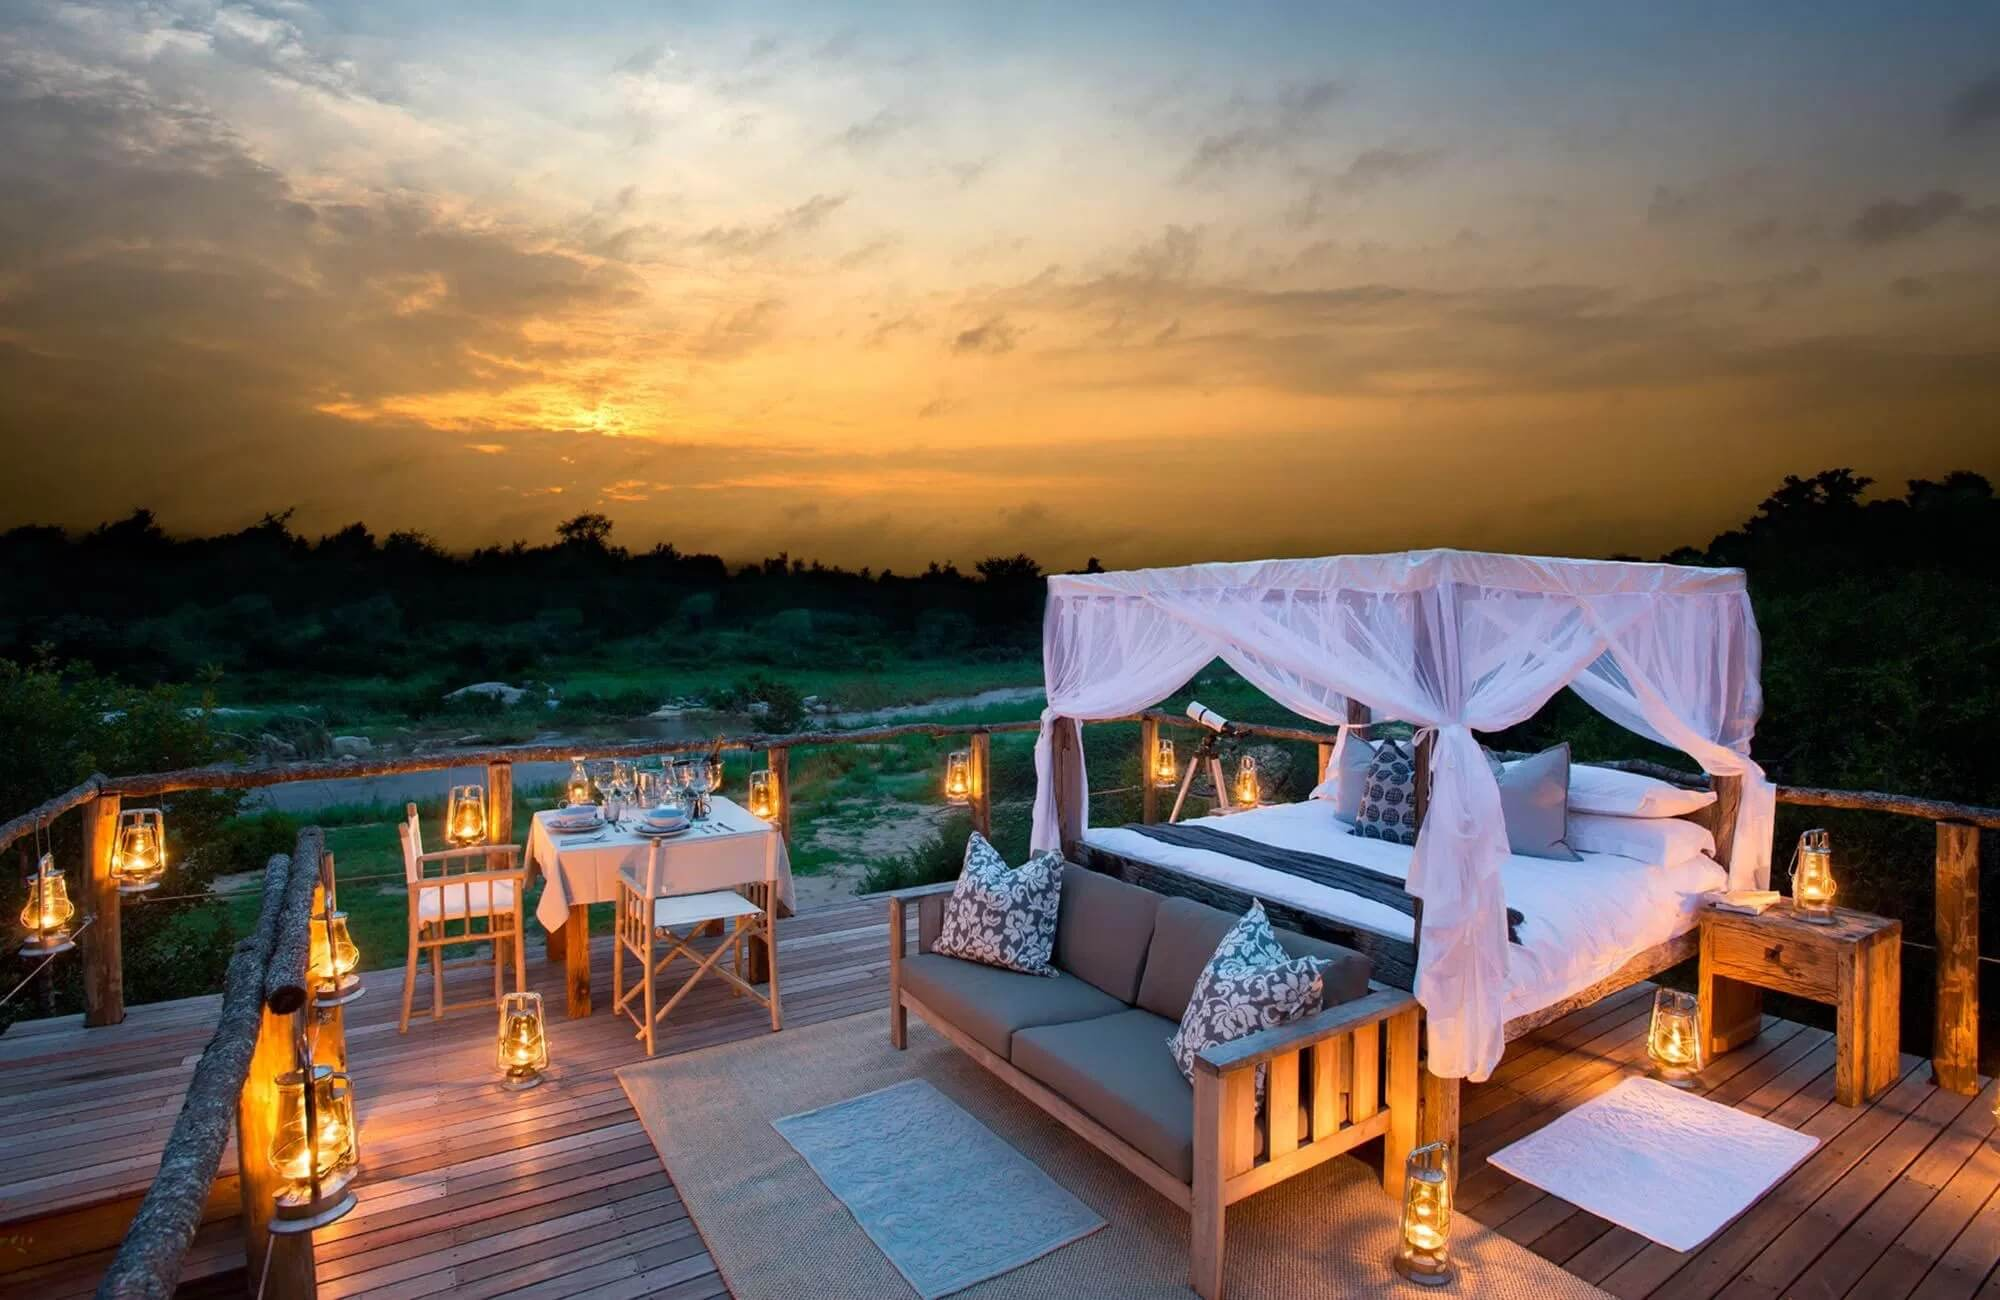 A magical setting atop the treehouse in Lion Sands Game Reserve in Kruger National Park